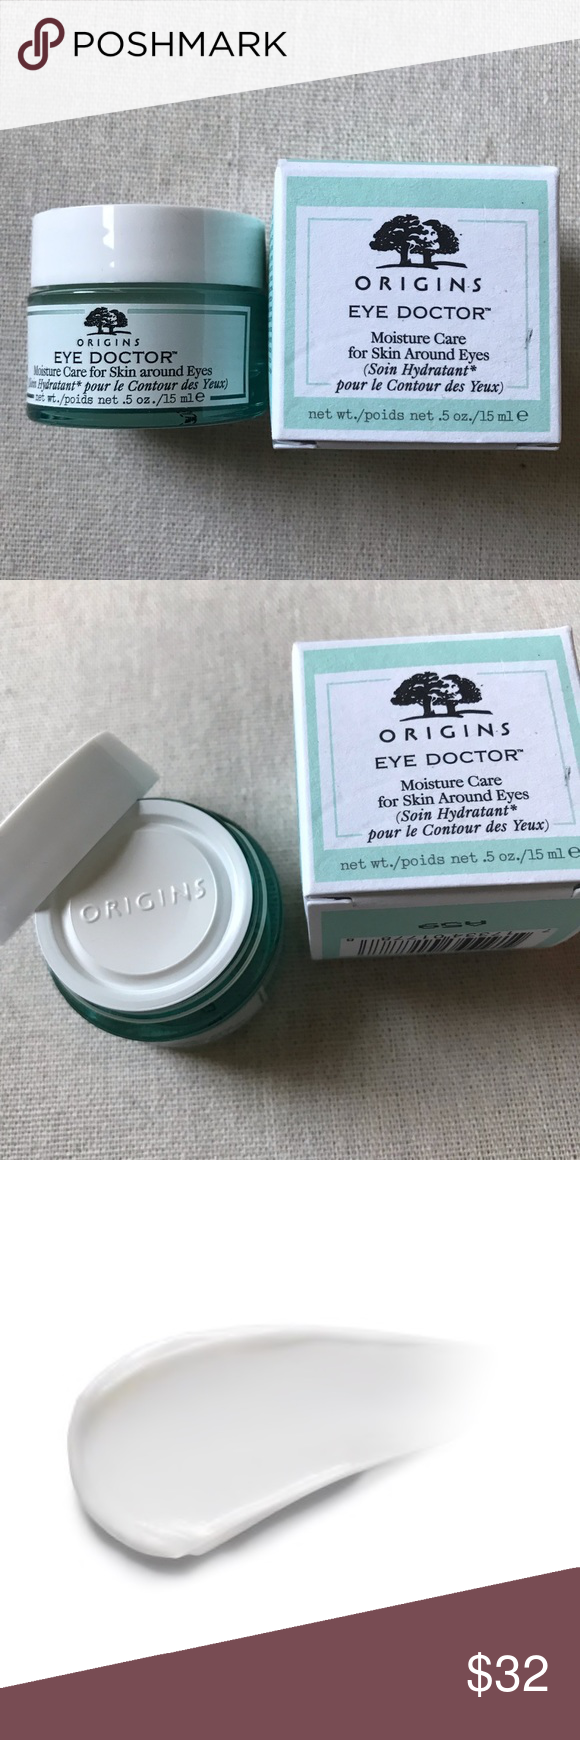 Origins Eye Doctor Moisture For Skin Around Eyes Things To Sell Clothes Design The Originals